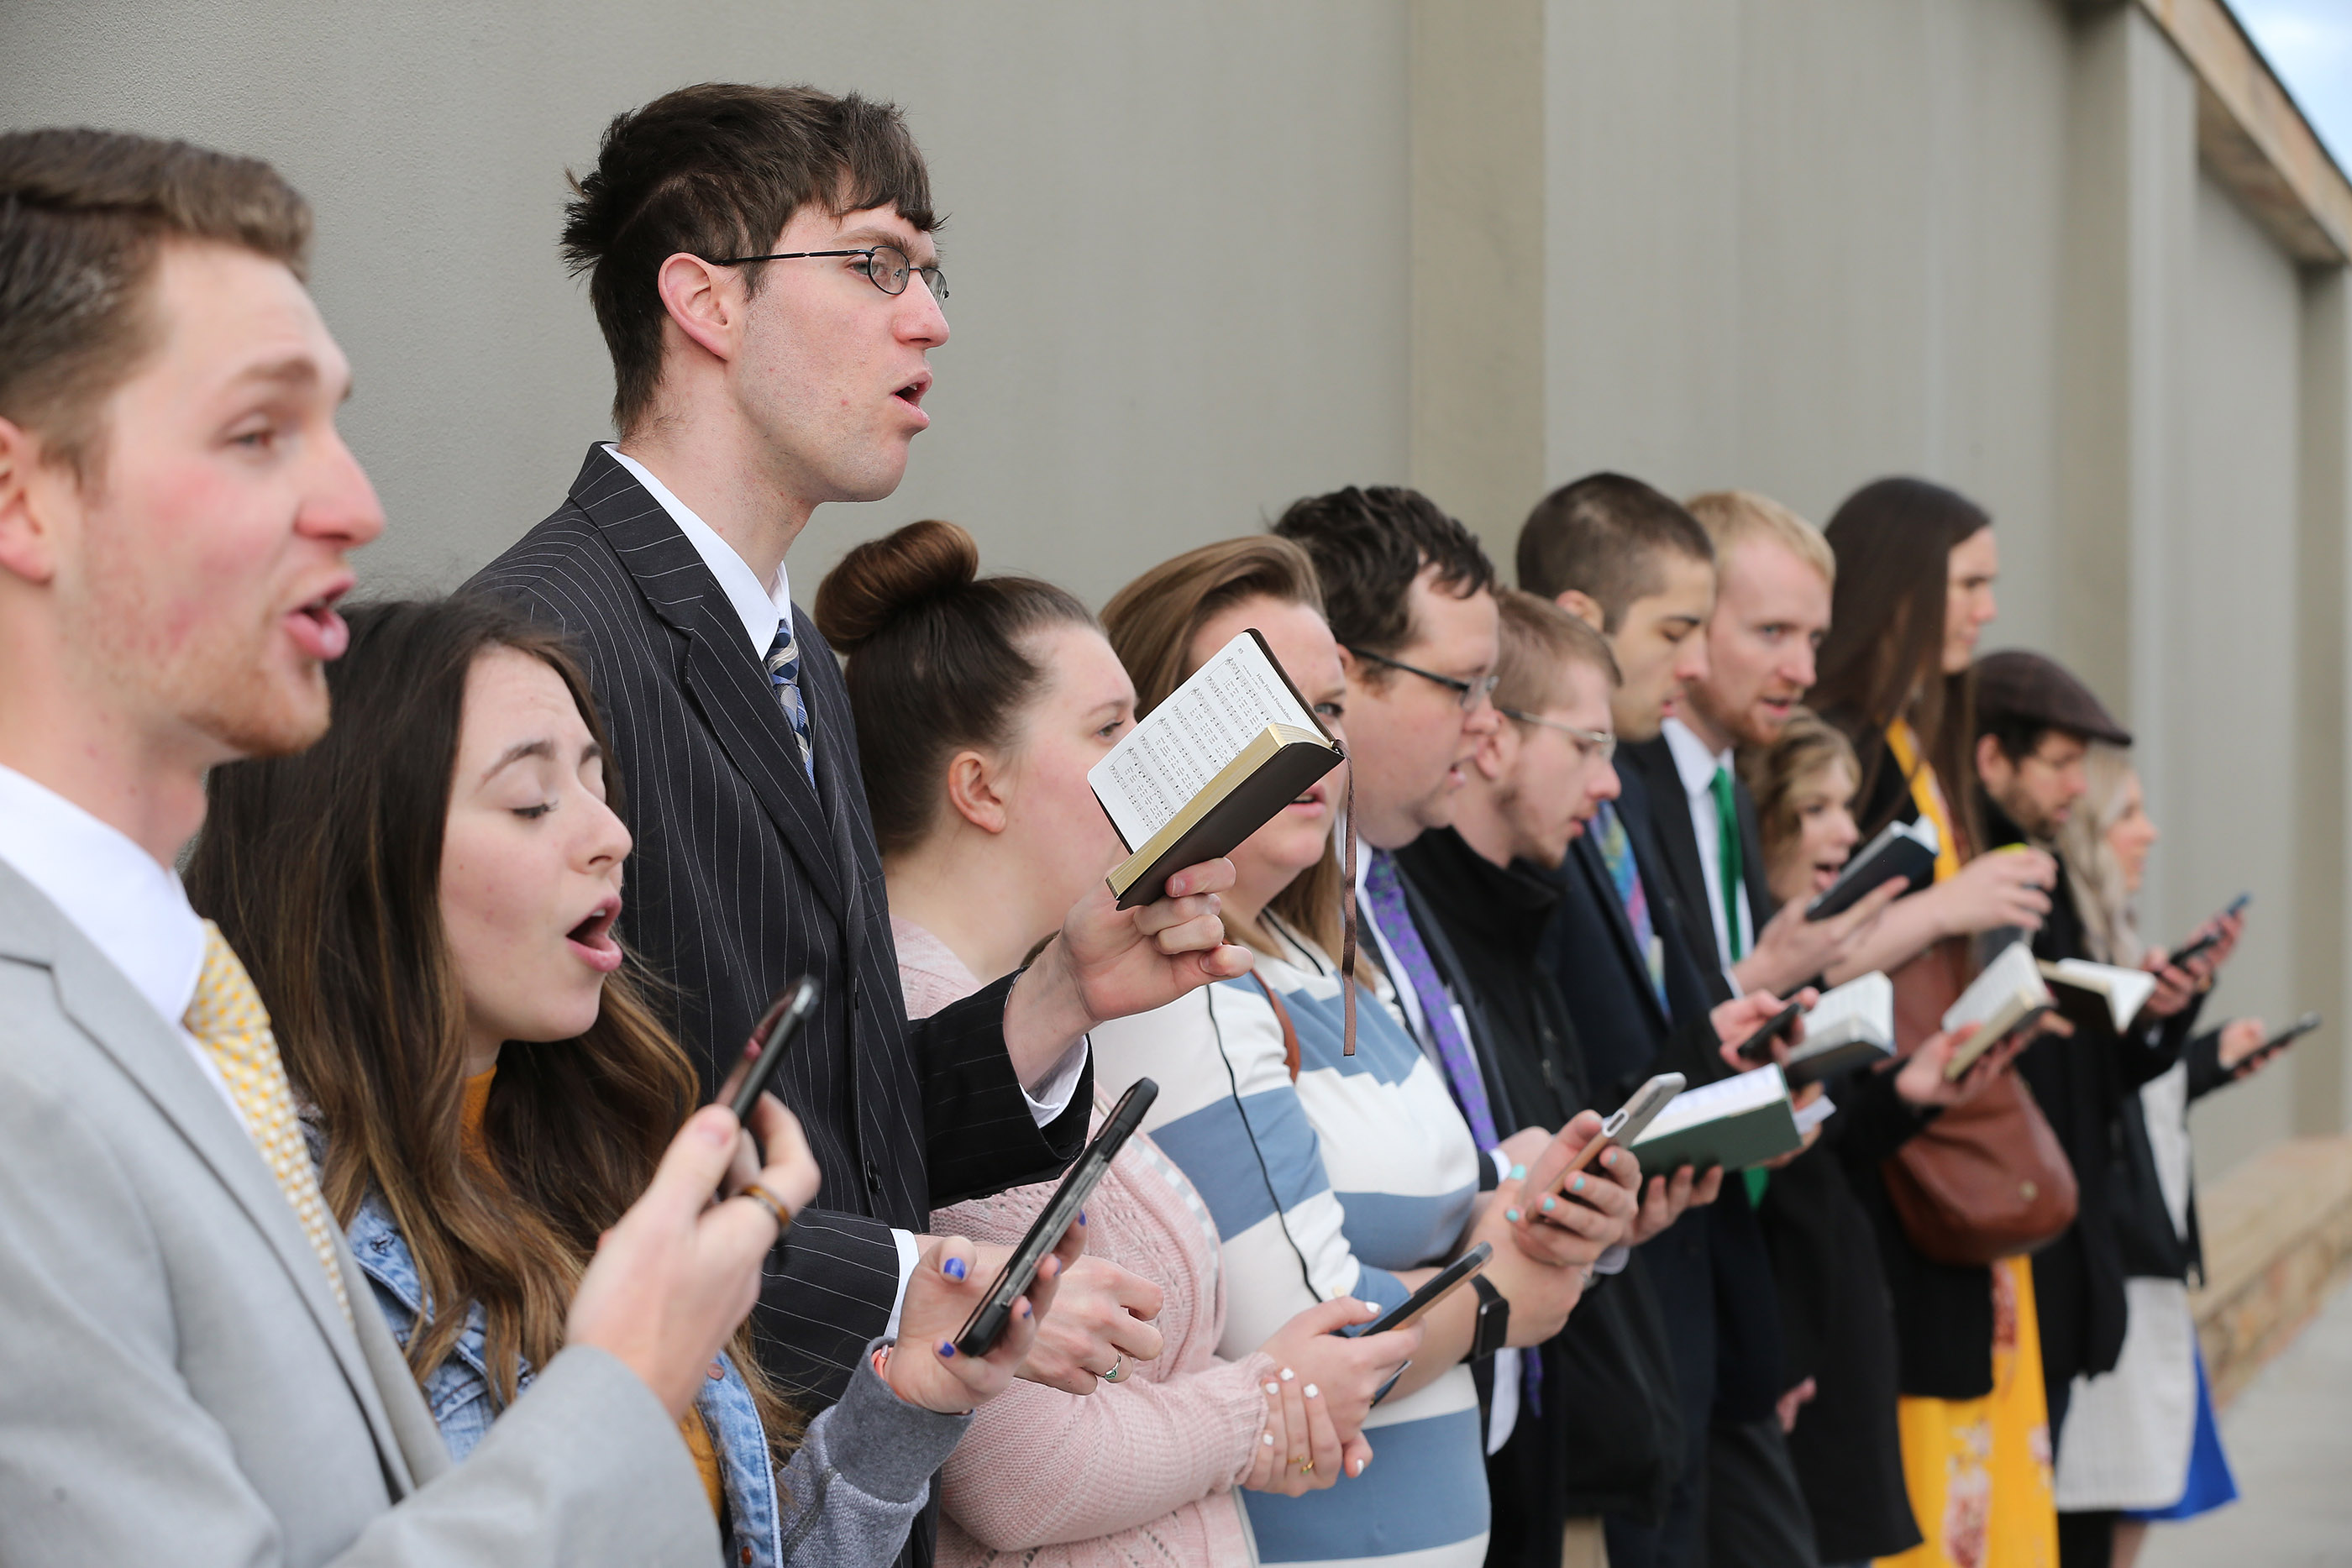 Conferencegoers sing outside at the Conference Center prior to the Sunday morning session of the 189th Annual General Conference of The Church of Jesus Christ of Latter-day Saints in Salt Lake City on Sunday, April 7, 2019.